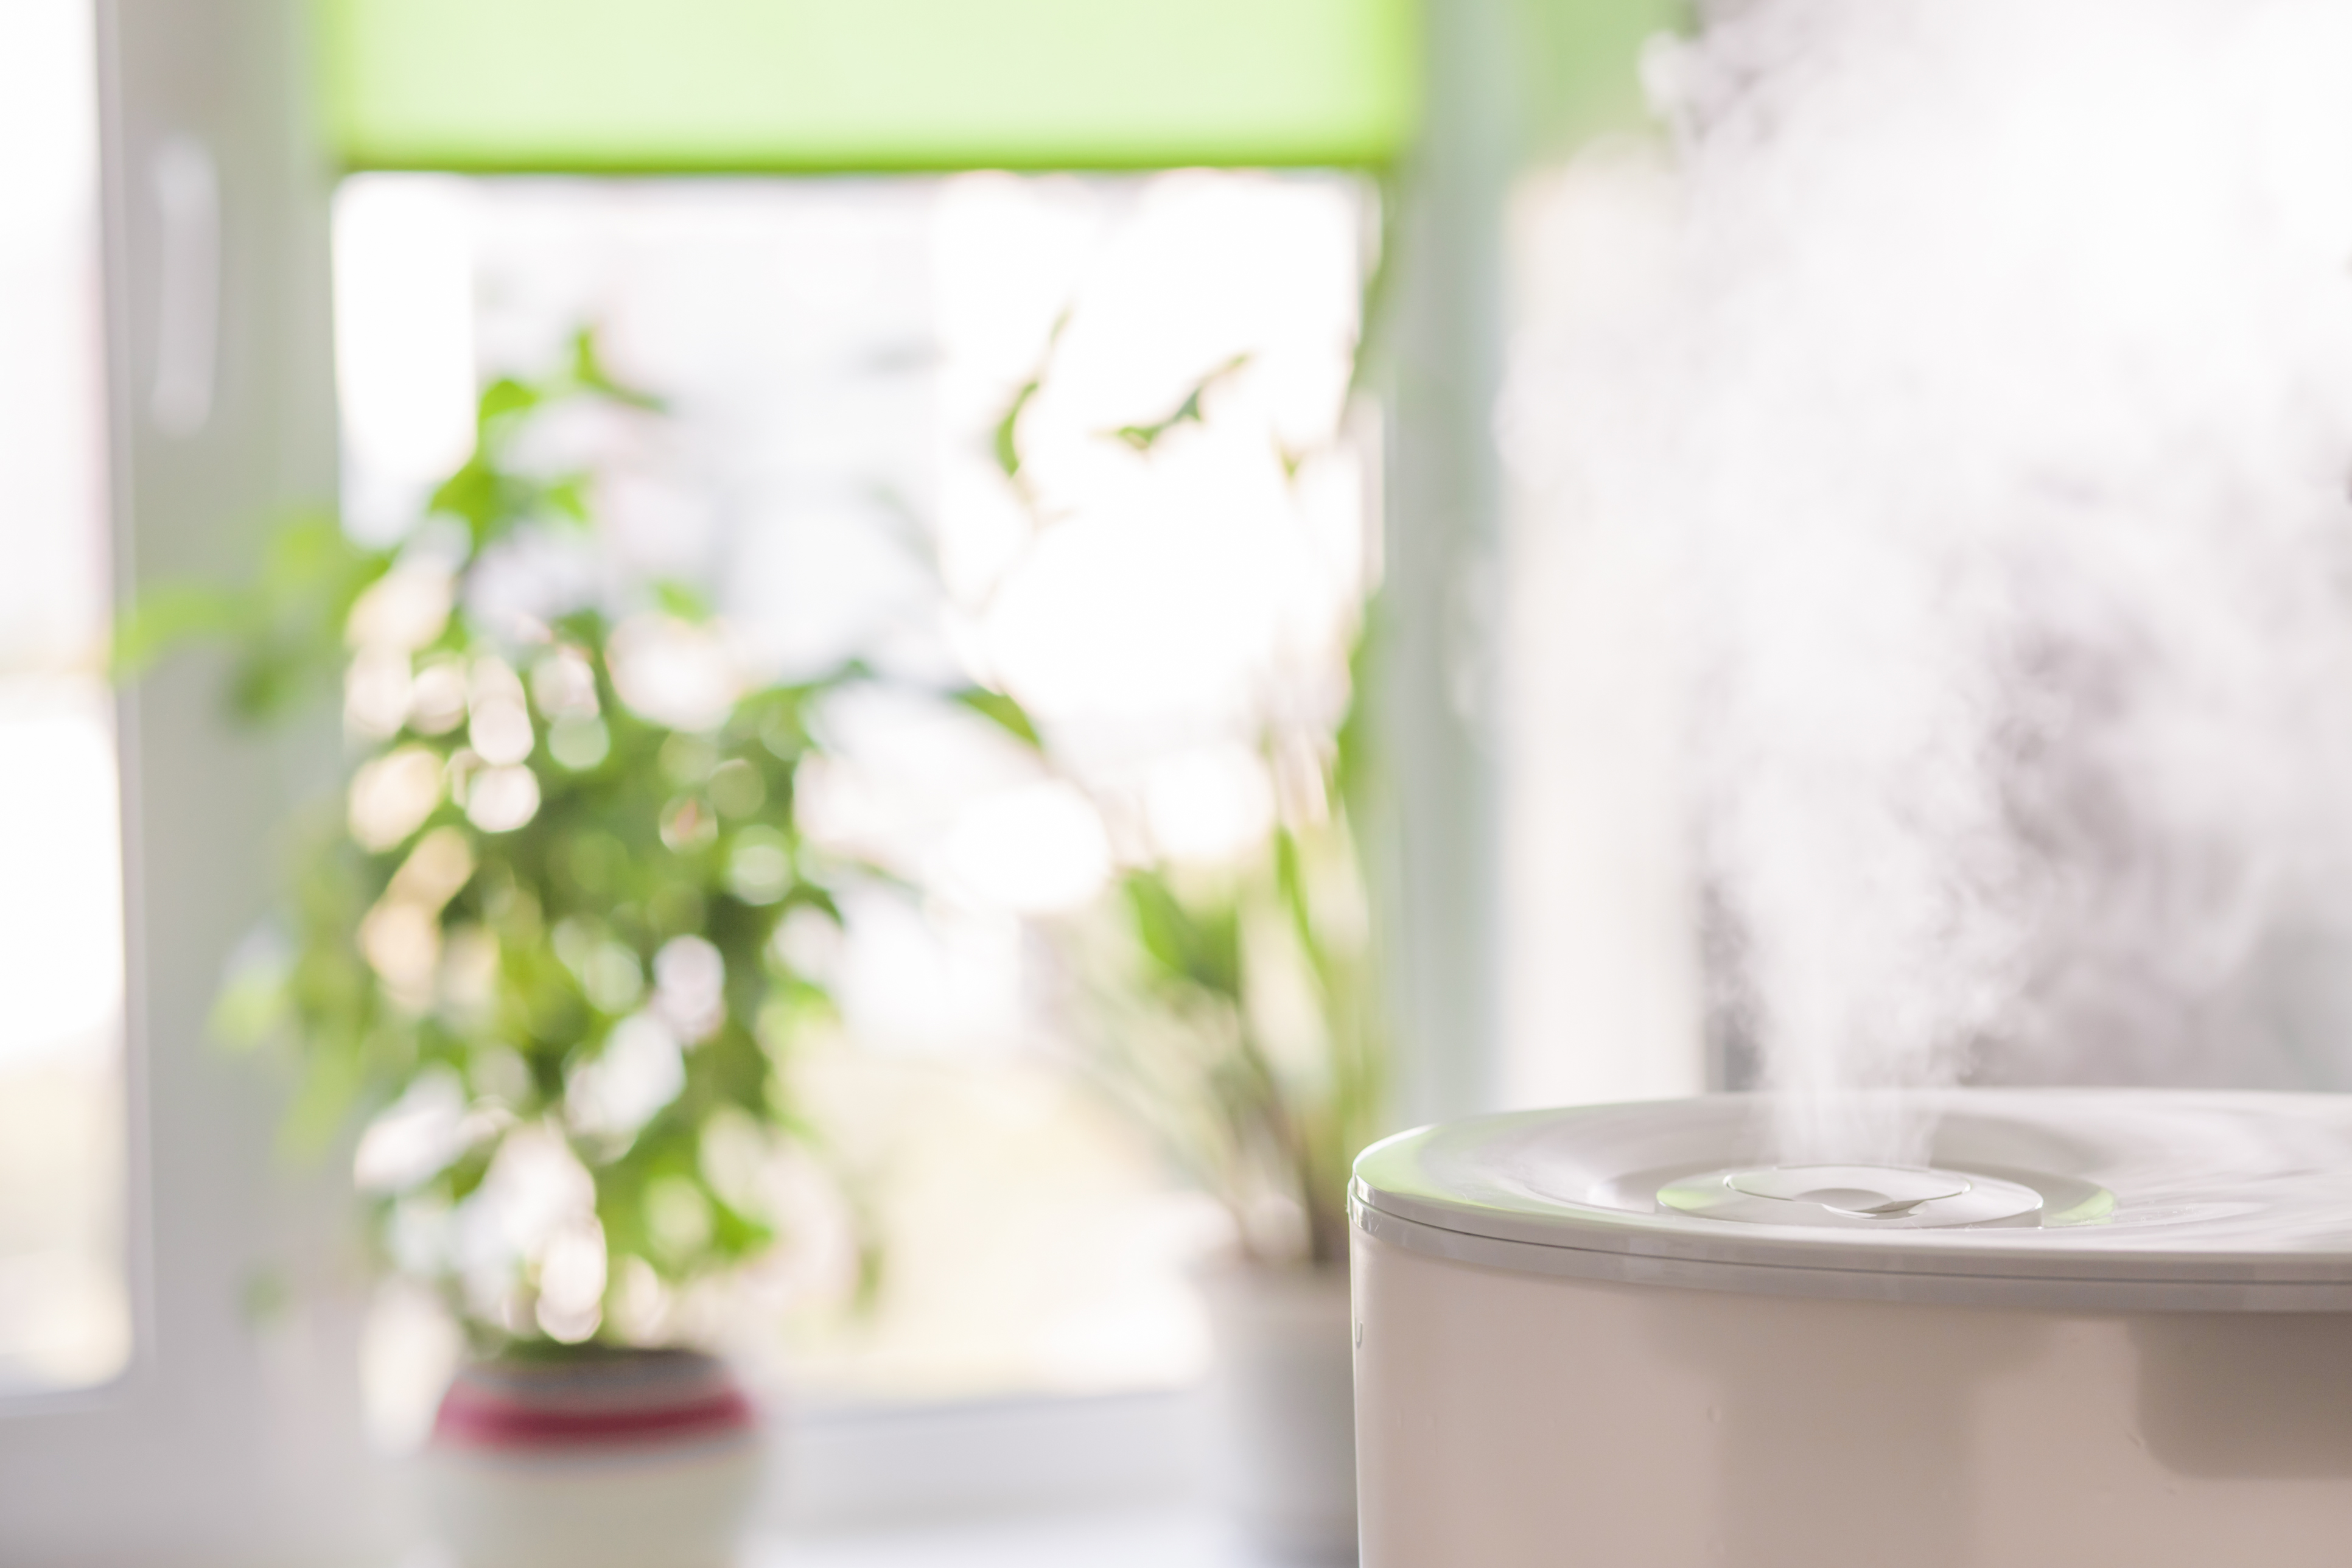 Whole House Air Purifier in Living Room.